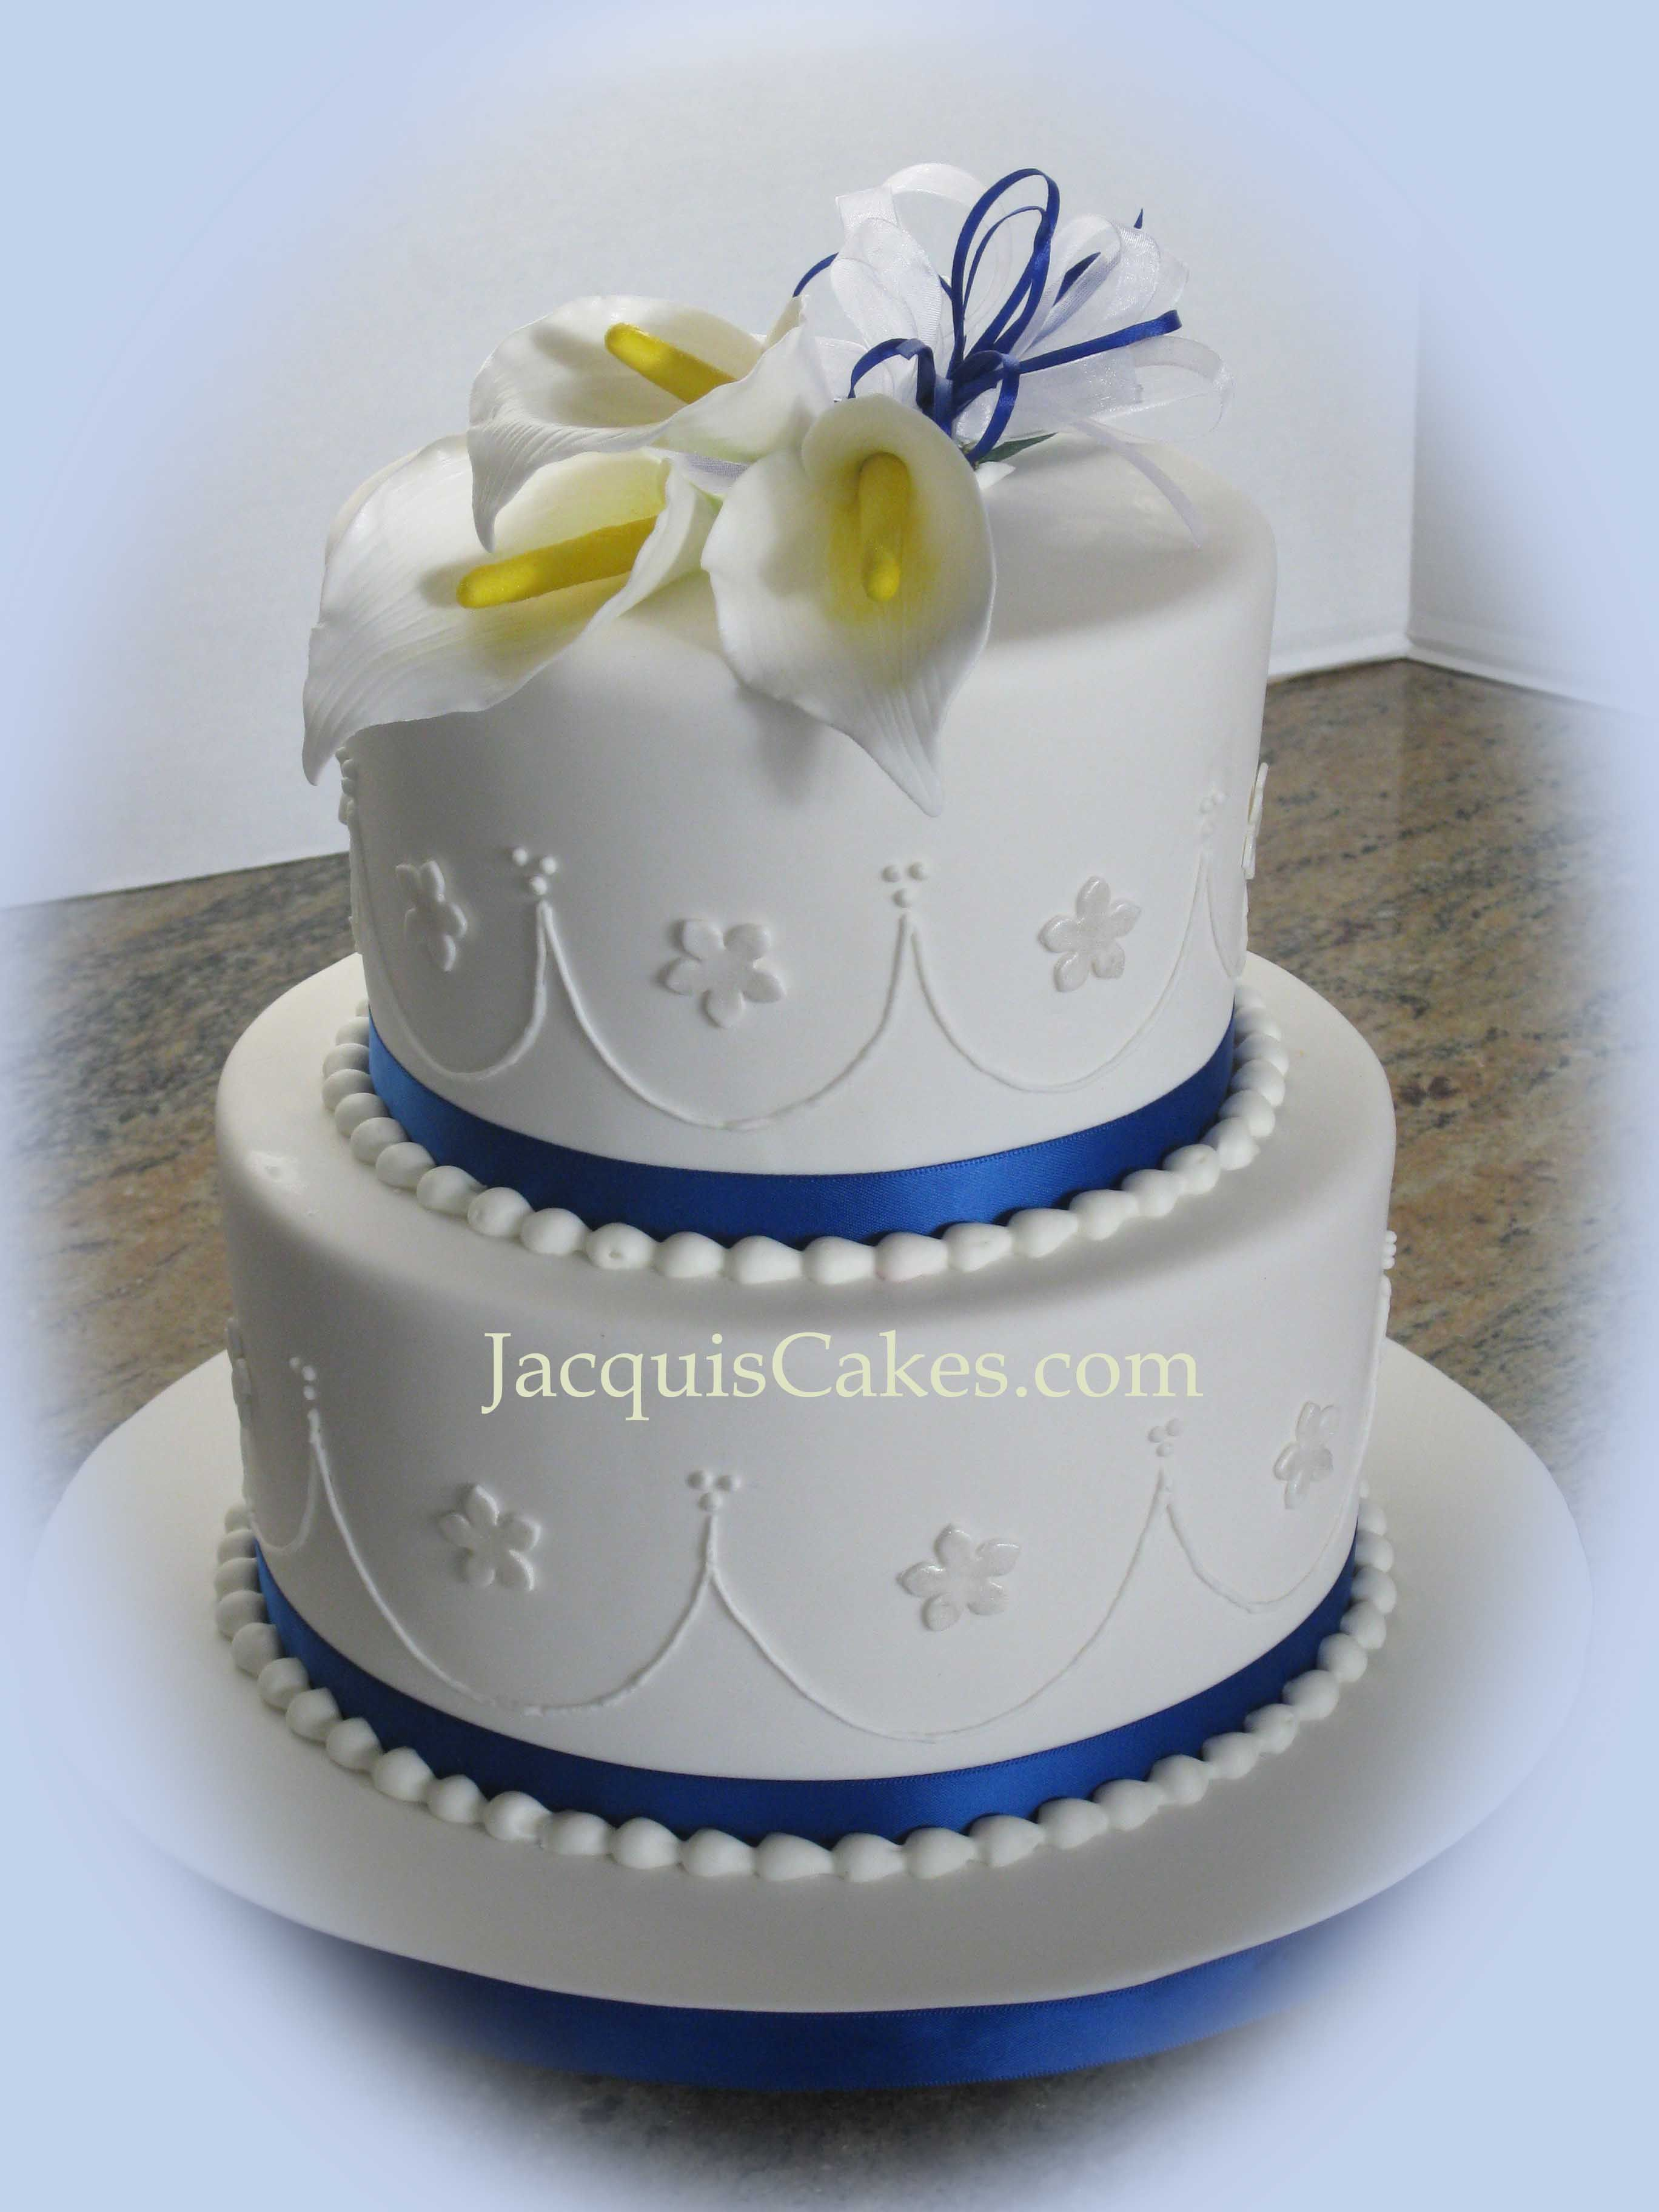 Pin by Alicia Garcia on Cake design ideas